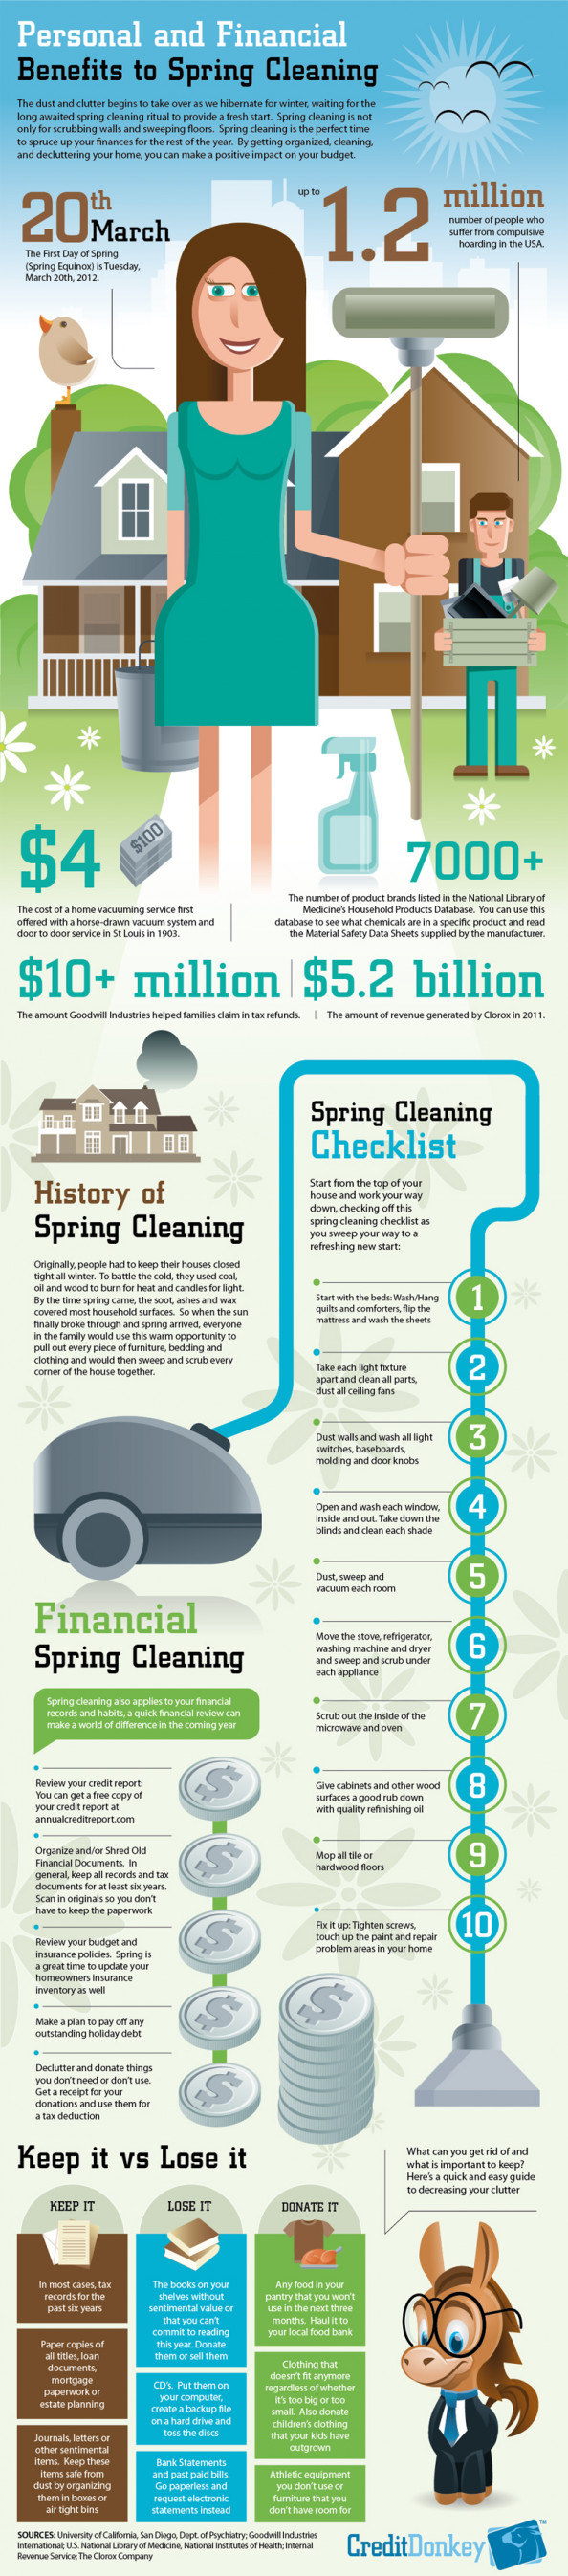 Personal and Financial Benefits to Spring Cleaning Infographic